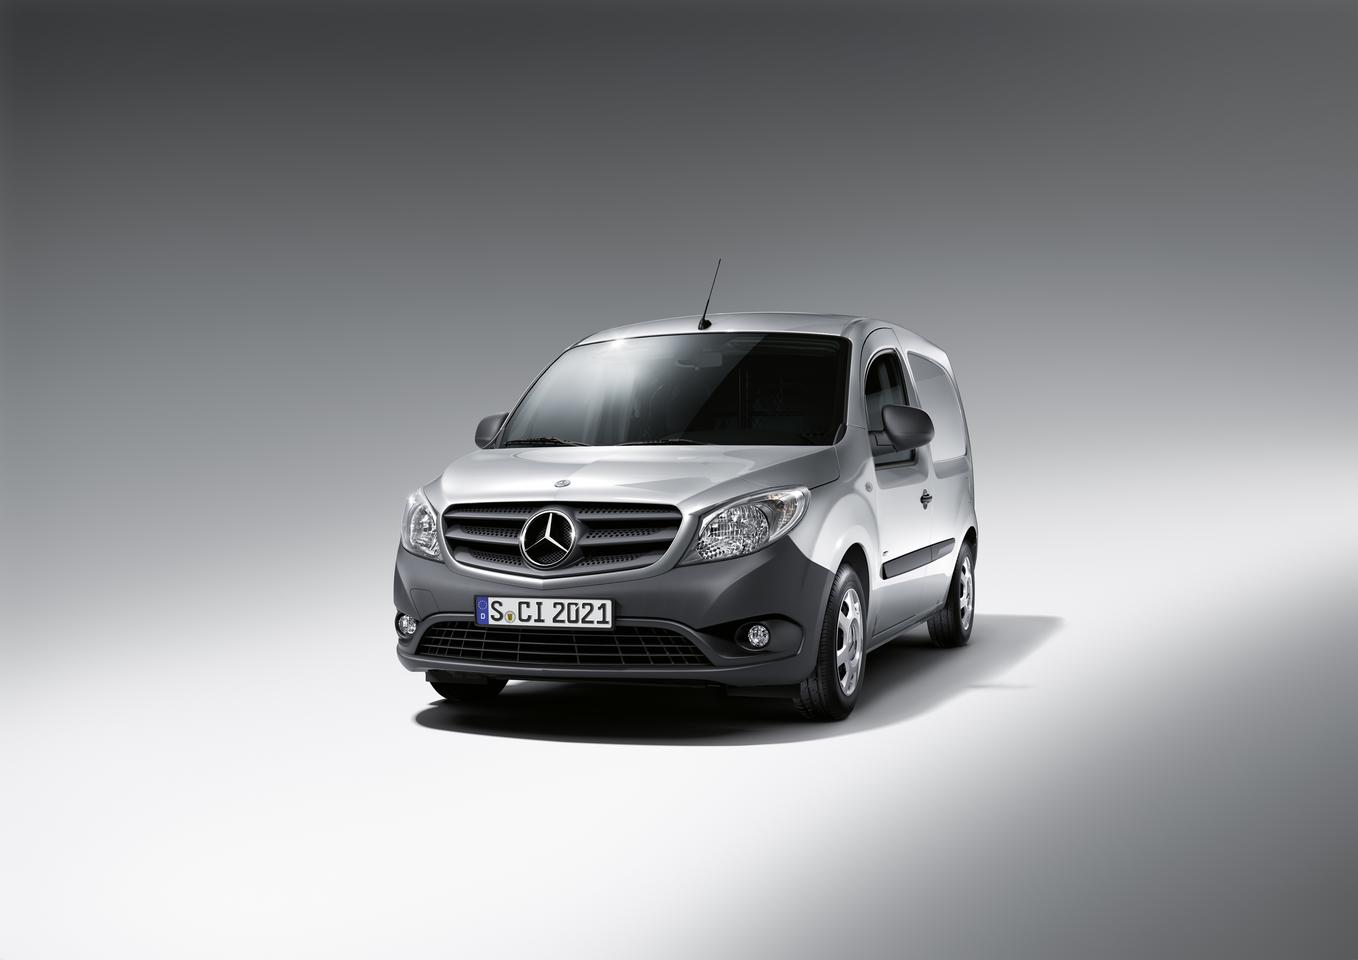 The Mercedes-Benz Citan will be available in three different lengths